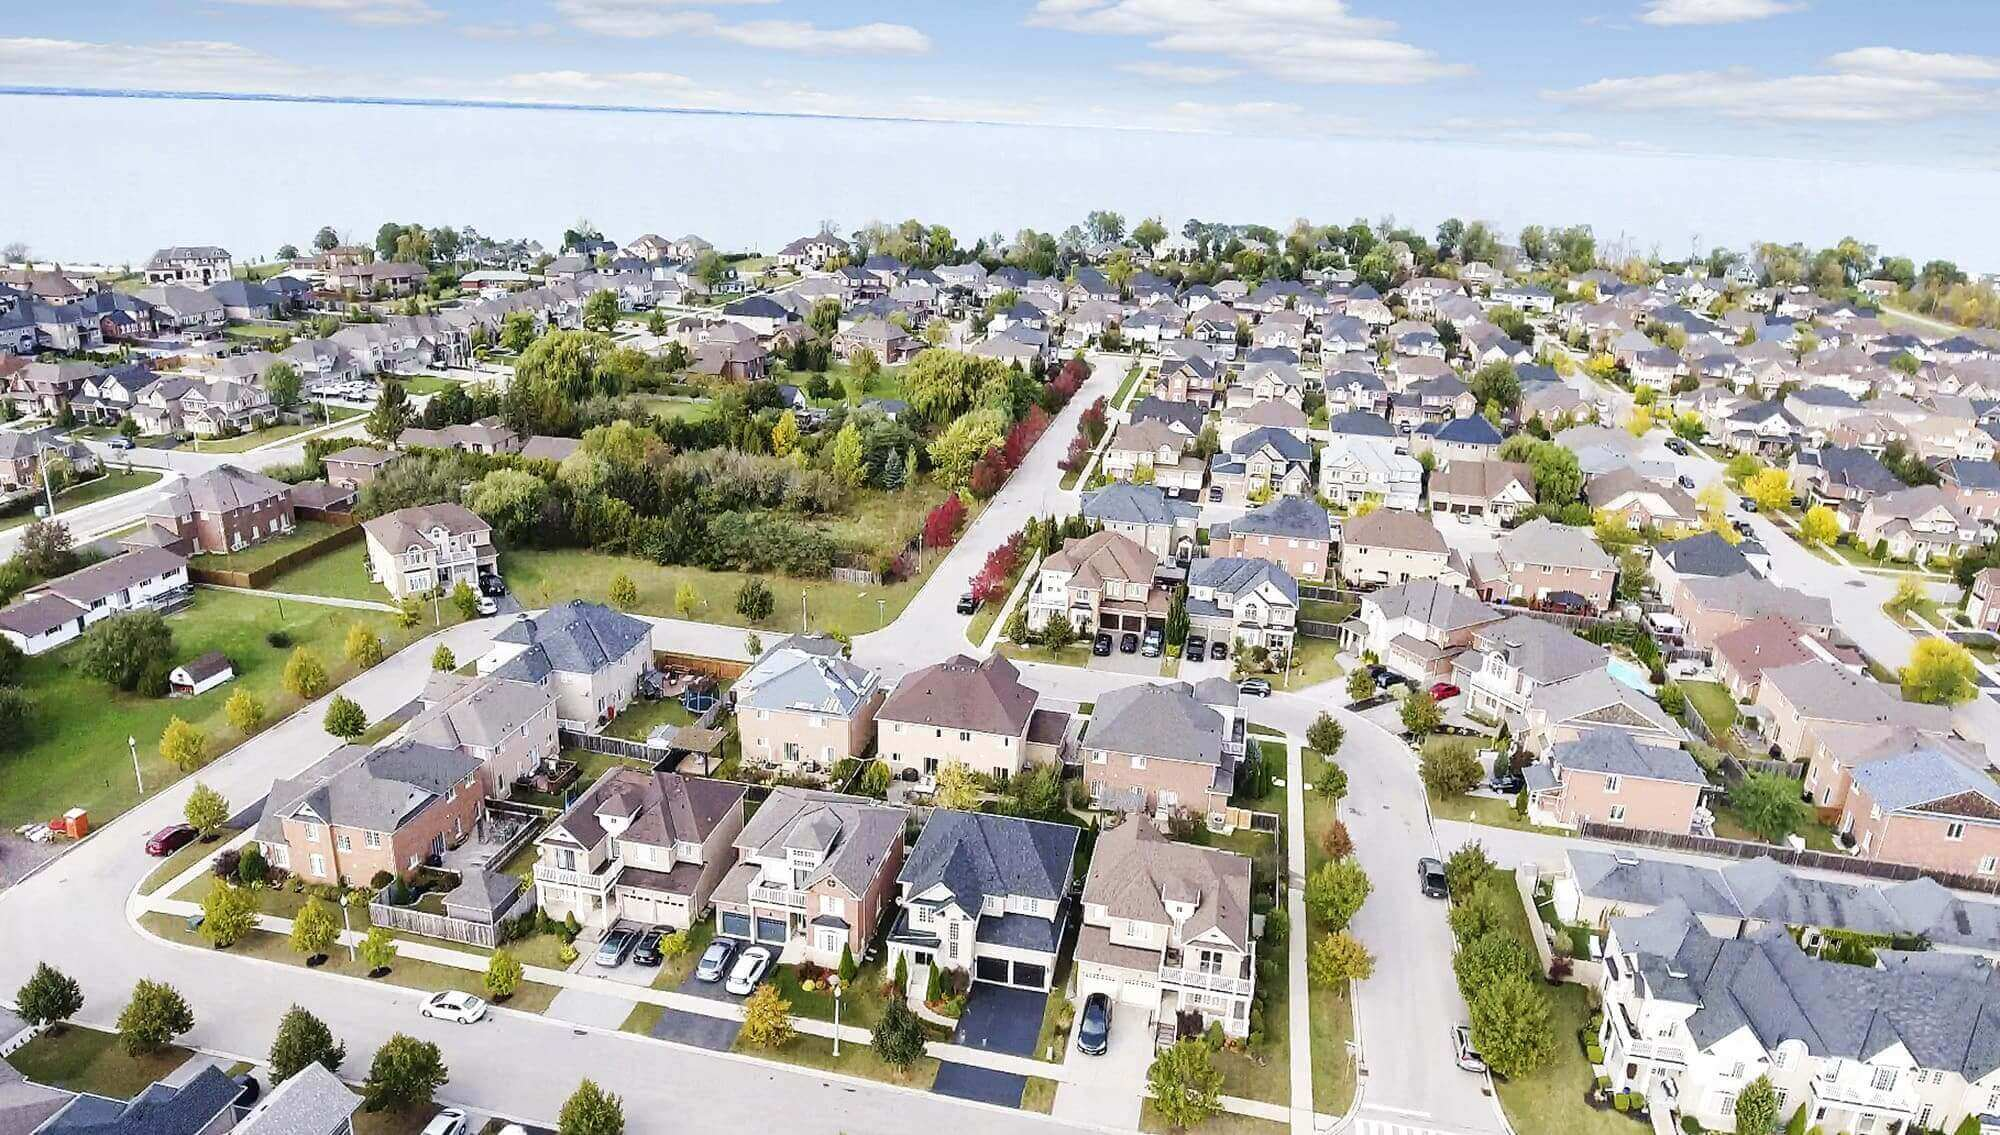 Fifty Point Community in Stoney Creek Aerial View Photograph